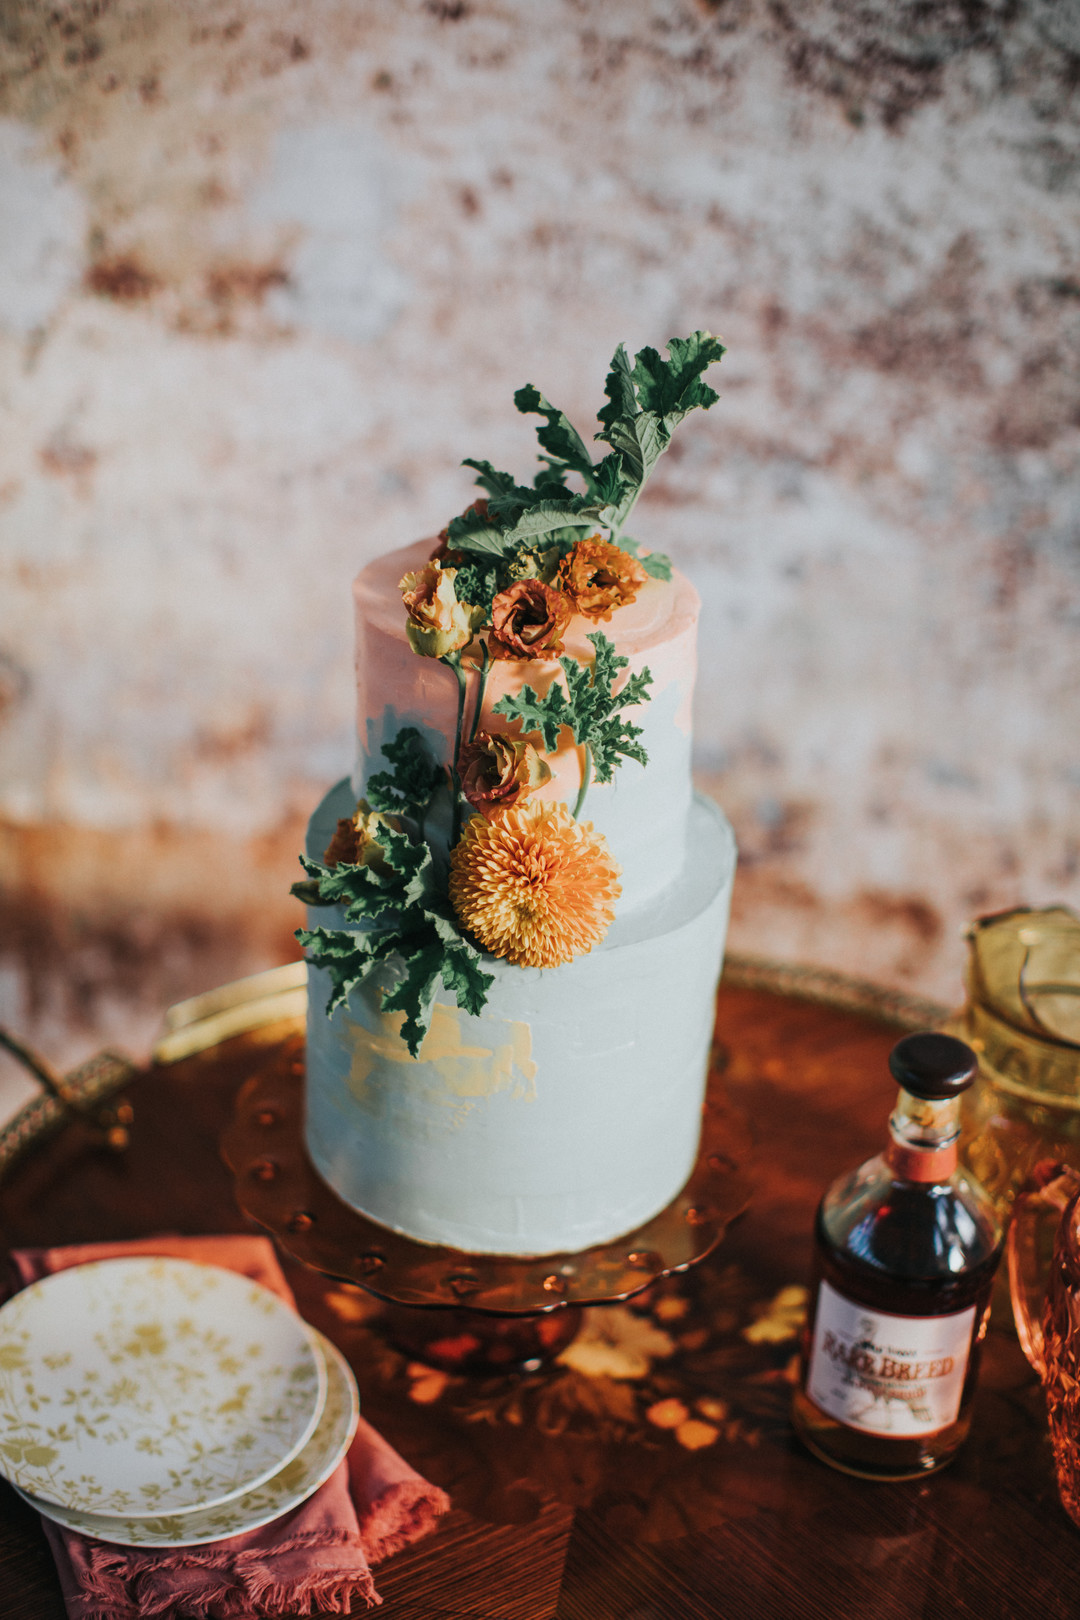 Orange and pastel color wedding cake with rustic flowers